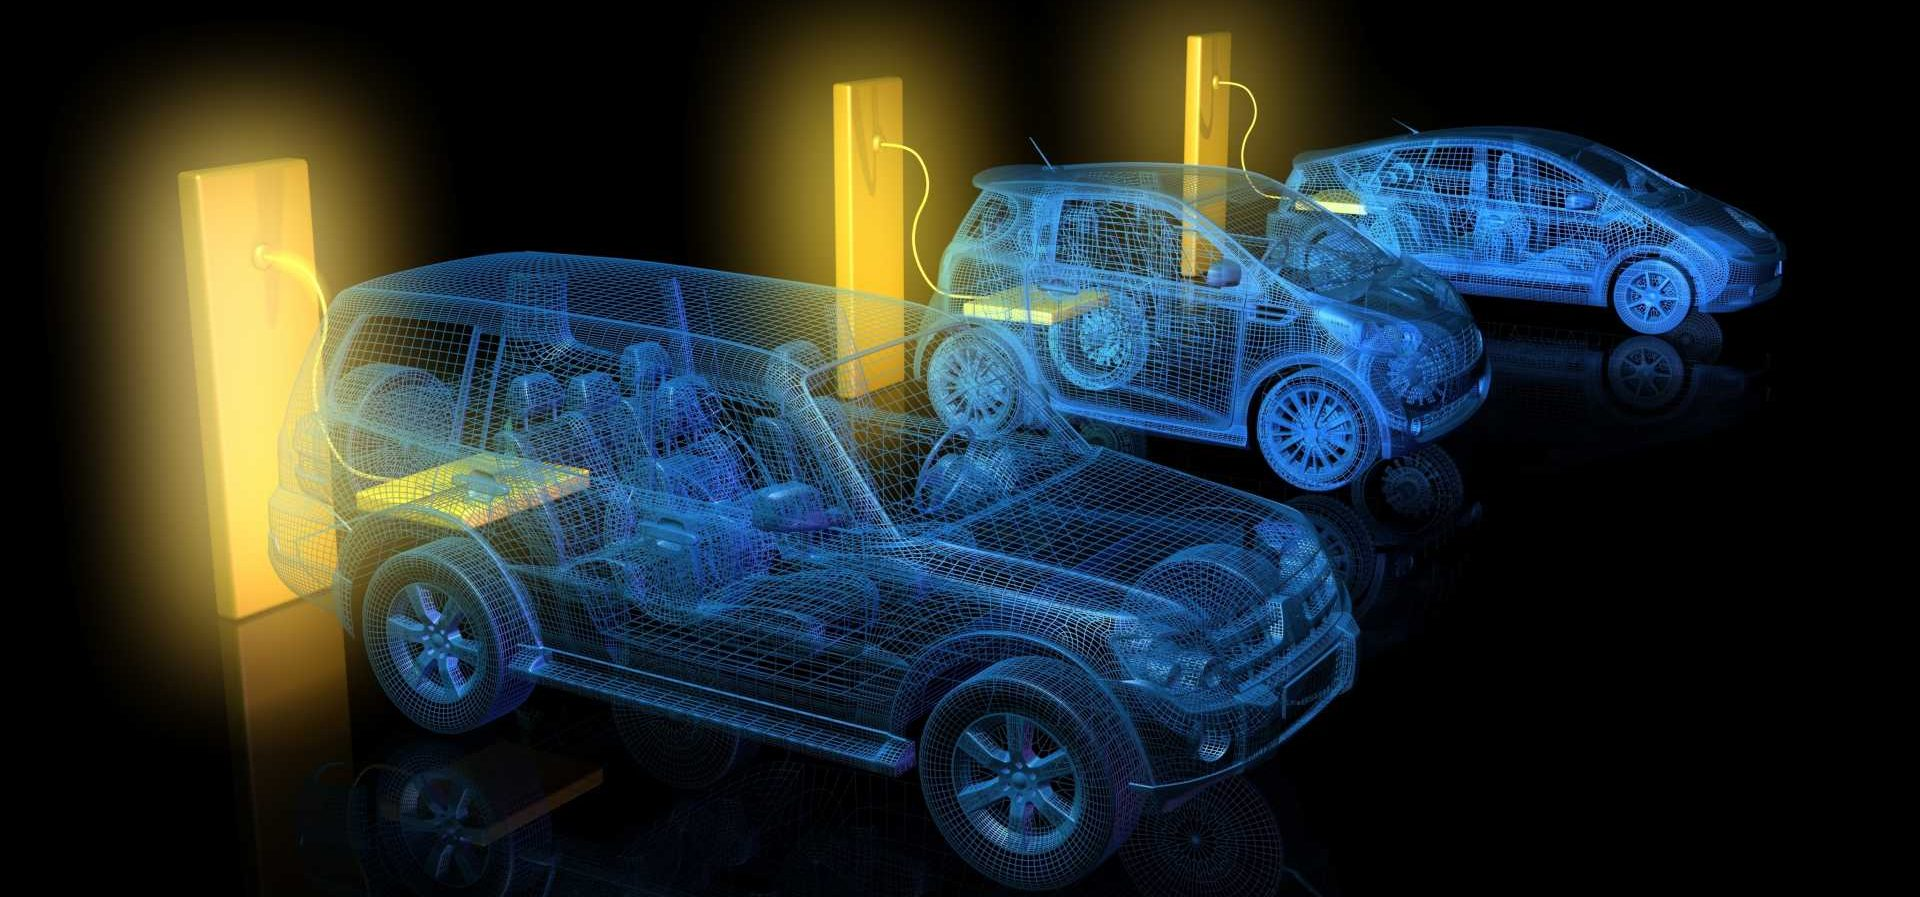 Clean Mobility - BEV - Automotive charging points electric and hybrid vehicles batteries thermal runaway – shutterstock image.